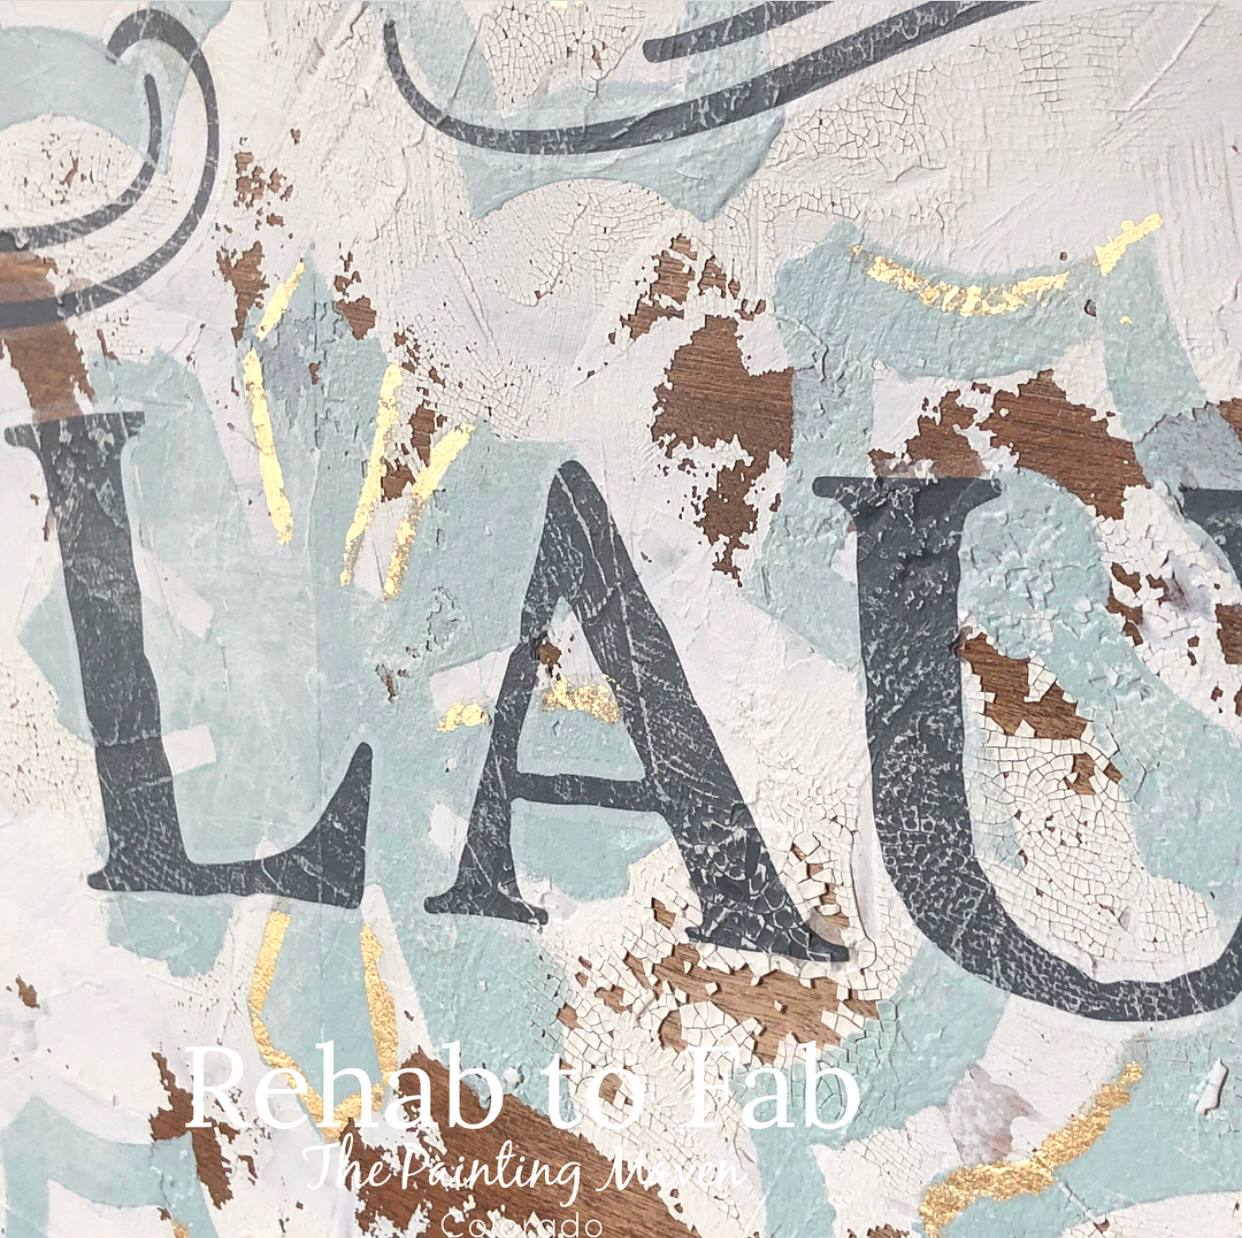 Add the transfer after you have added all the mediums. Simply peel off the backing, rub over the transfer image with a wooden stick and peel away the top layer to reveal your image. Give the image a light sanding to add a bit of a distressed look to match the chippy aged look of your background.